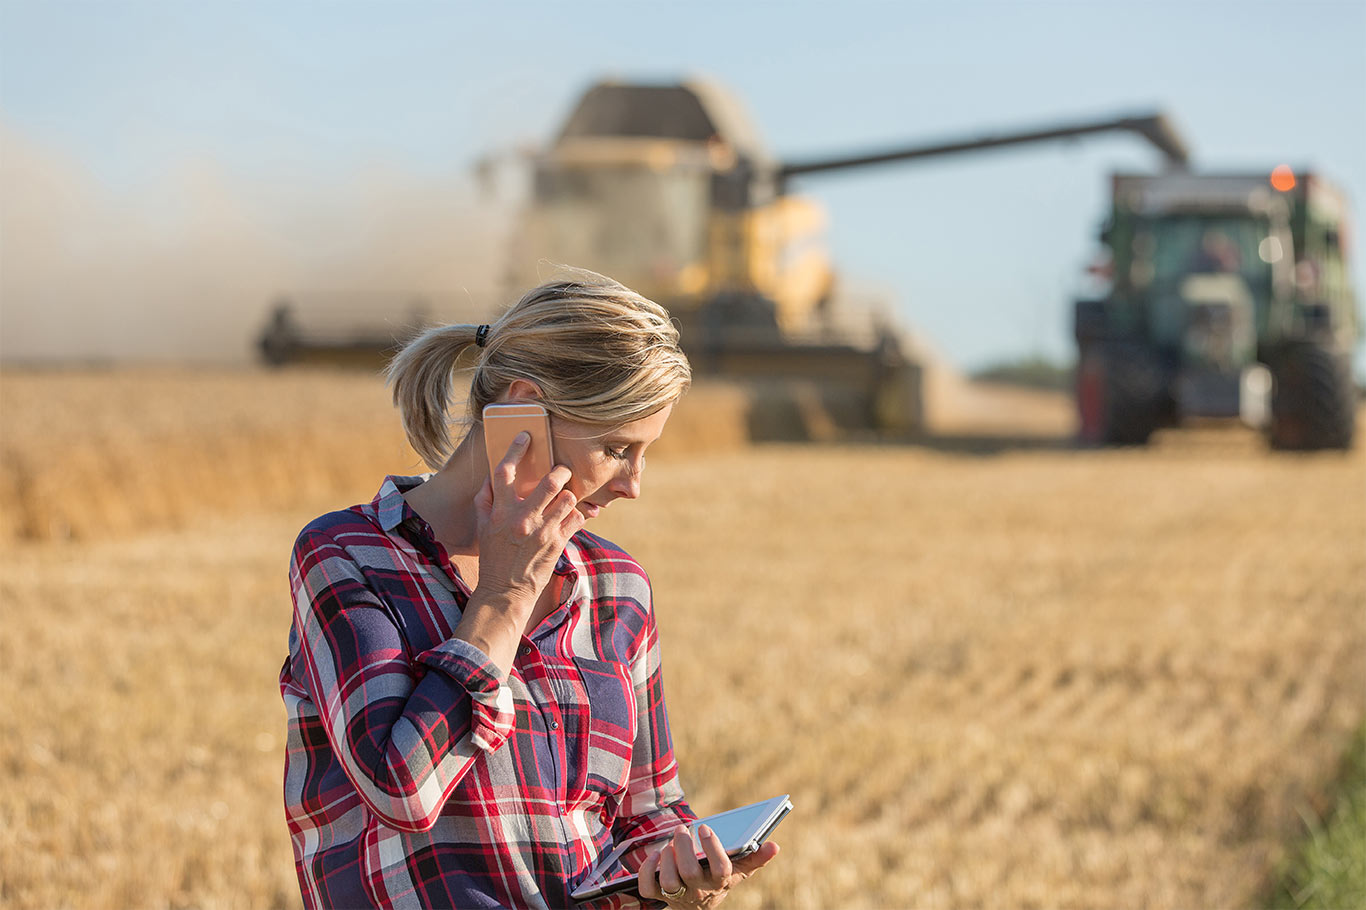 Farmer in wheatfield using a smartphone and tablet.